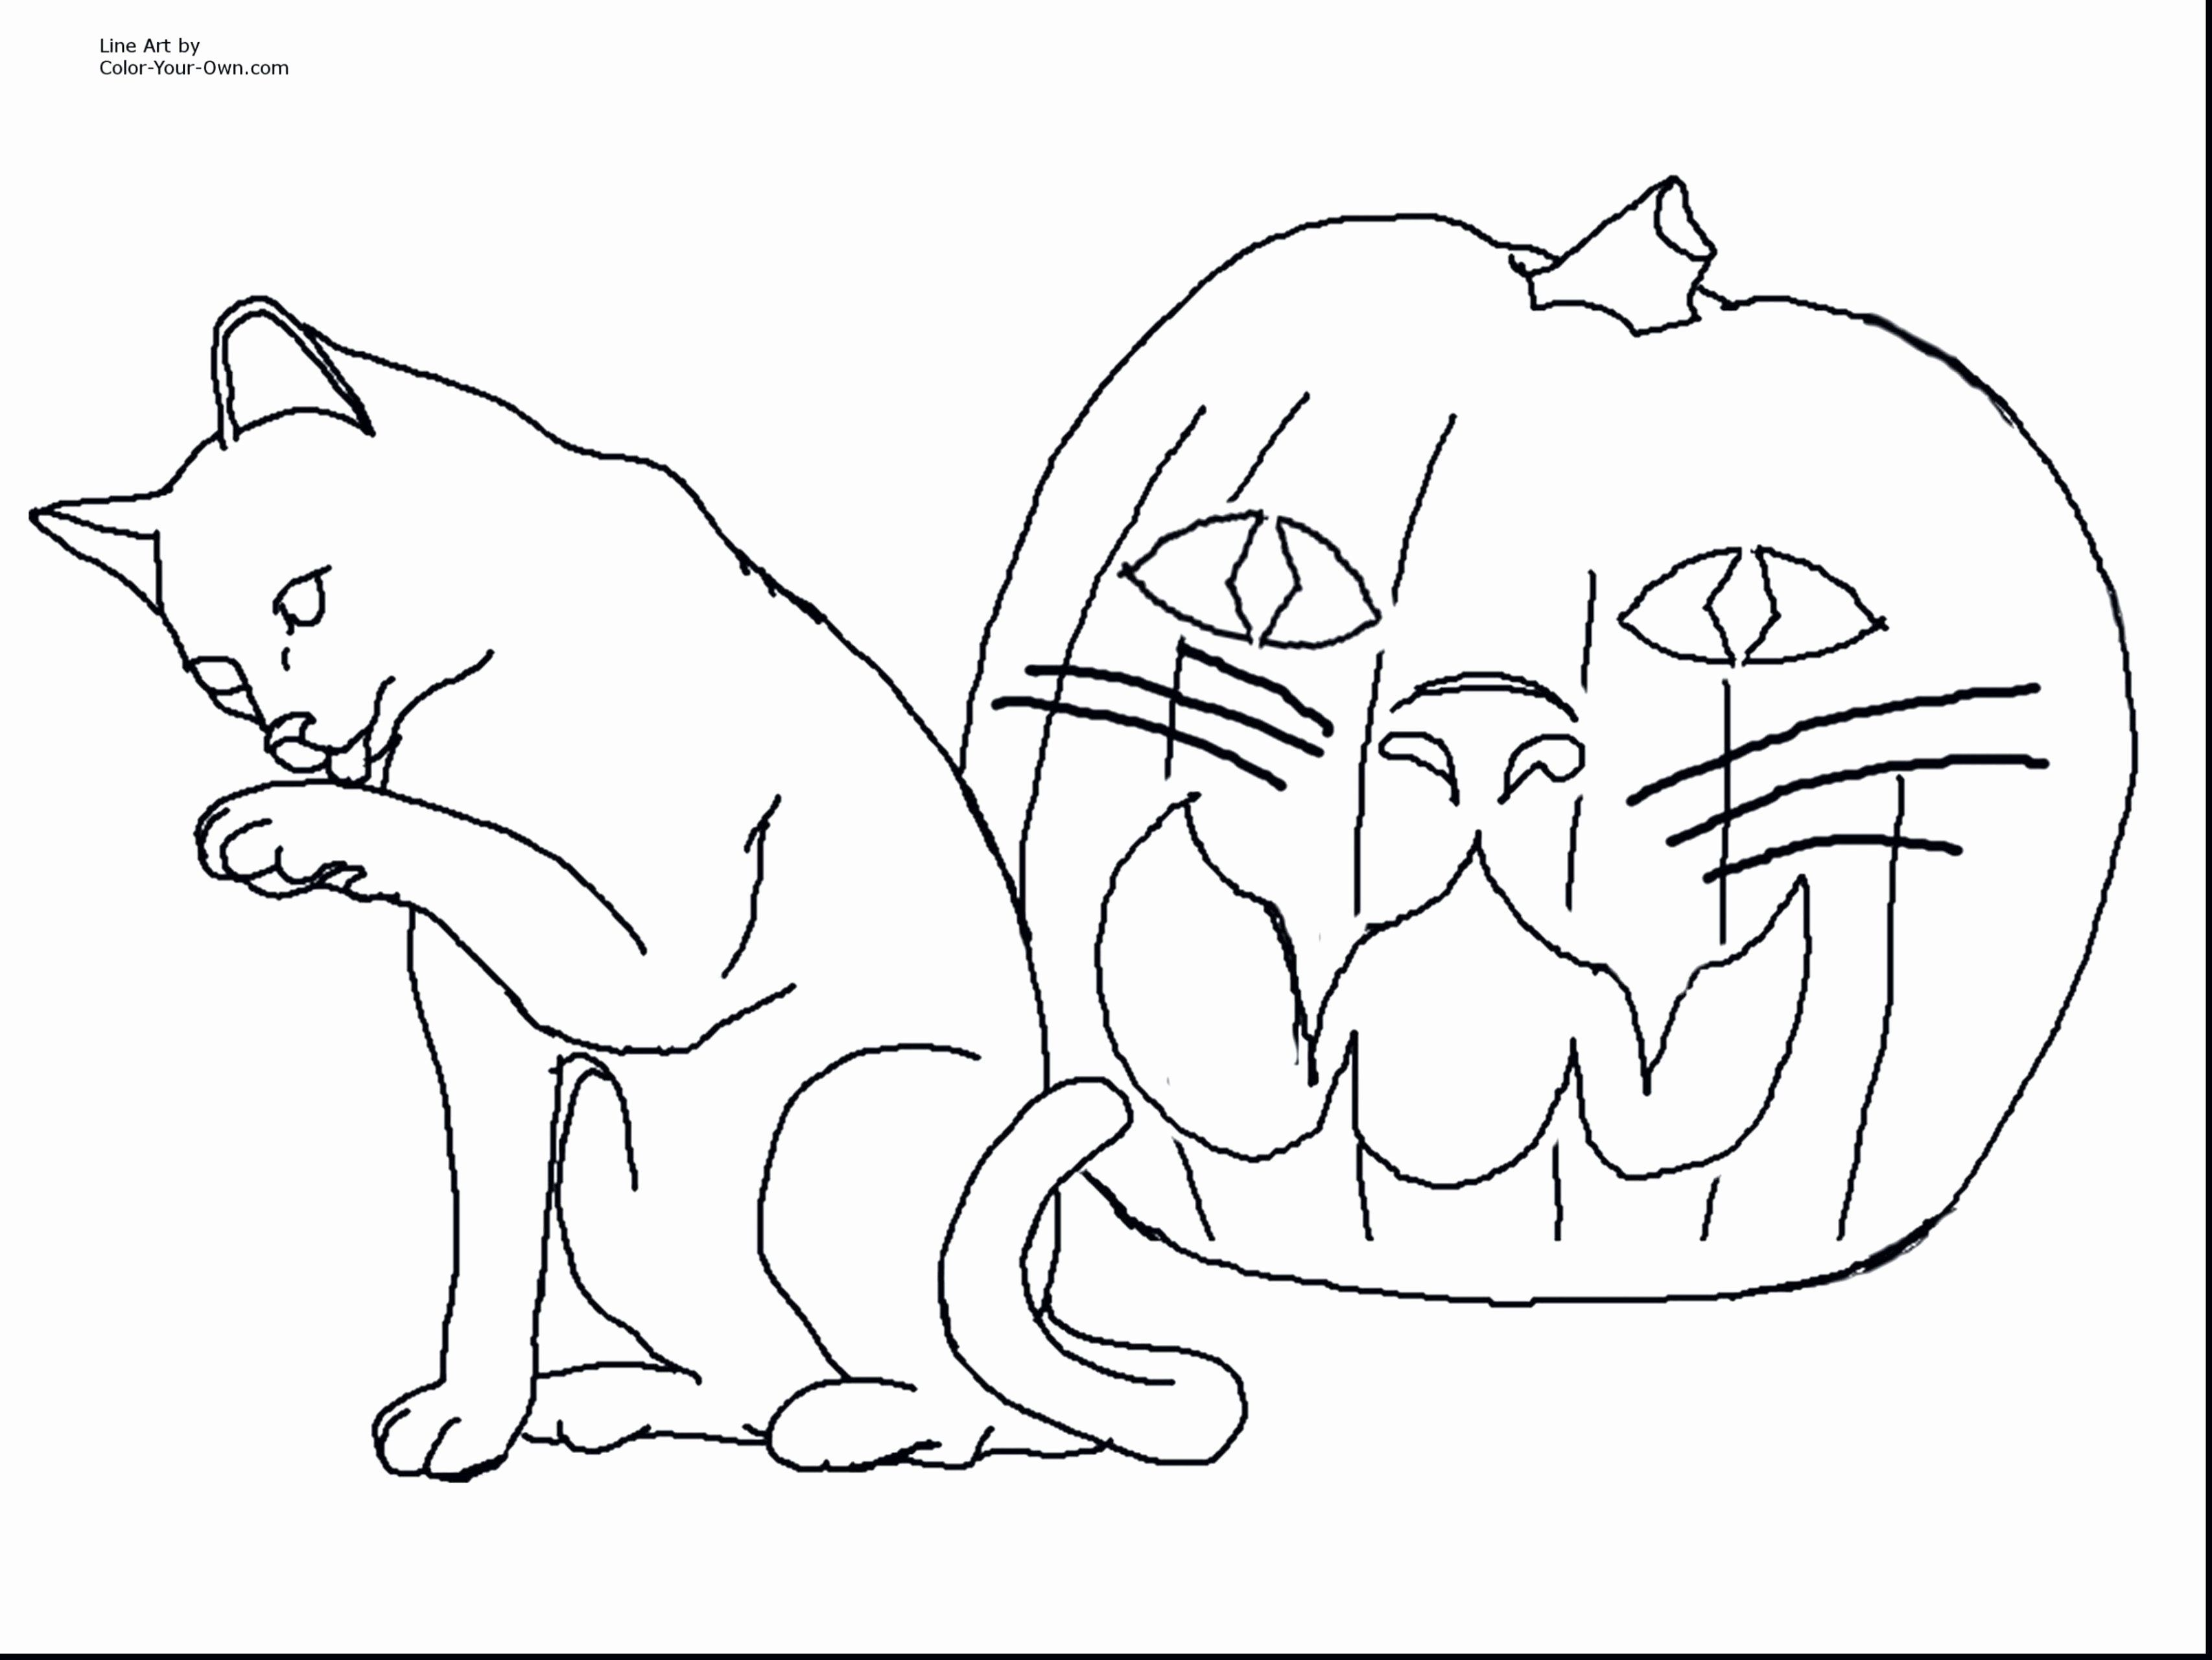 Australian Animals Coloring Page Luxury Coloring Book Dog Colouring Pages Printable Coloring Booke Nyan Cat Beautiful [ 2560 x 3412 Pixel ]